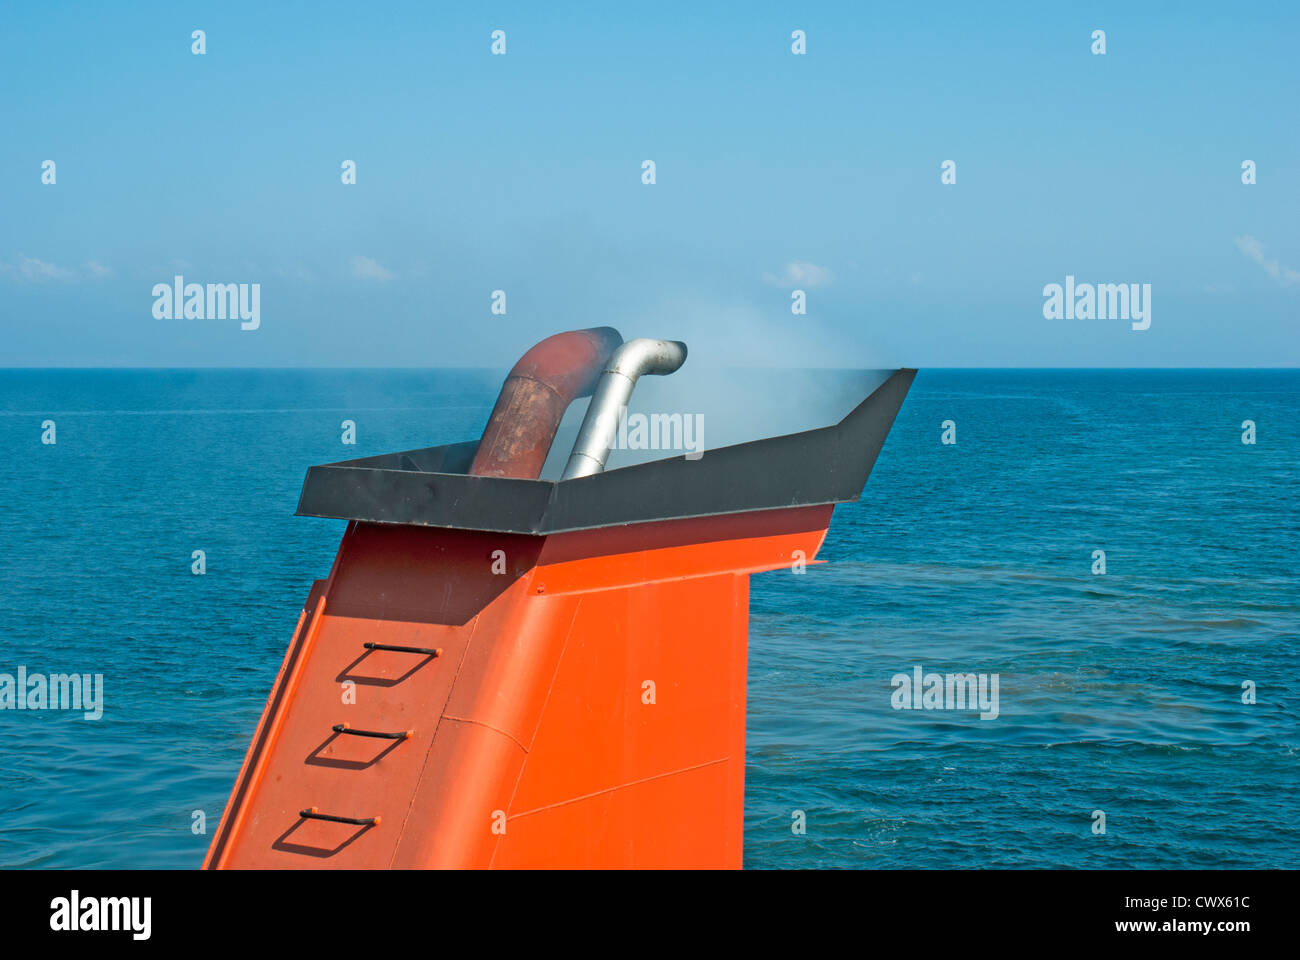 Chimney of ferry boat in Greece linking the islands to mainland - Stock Image